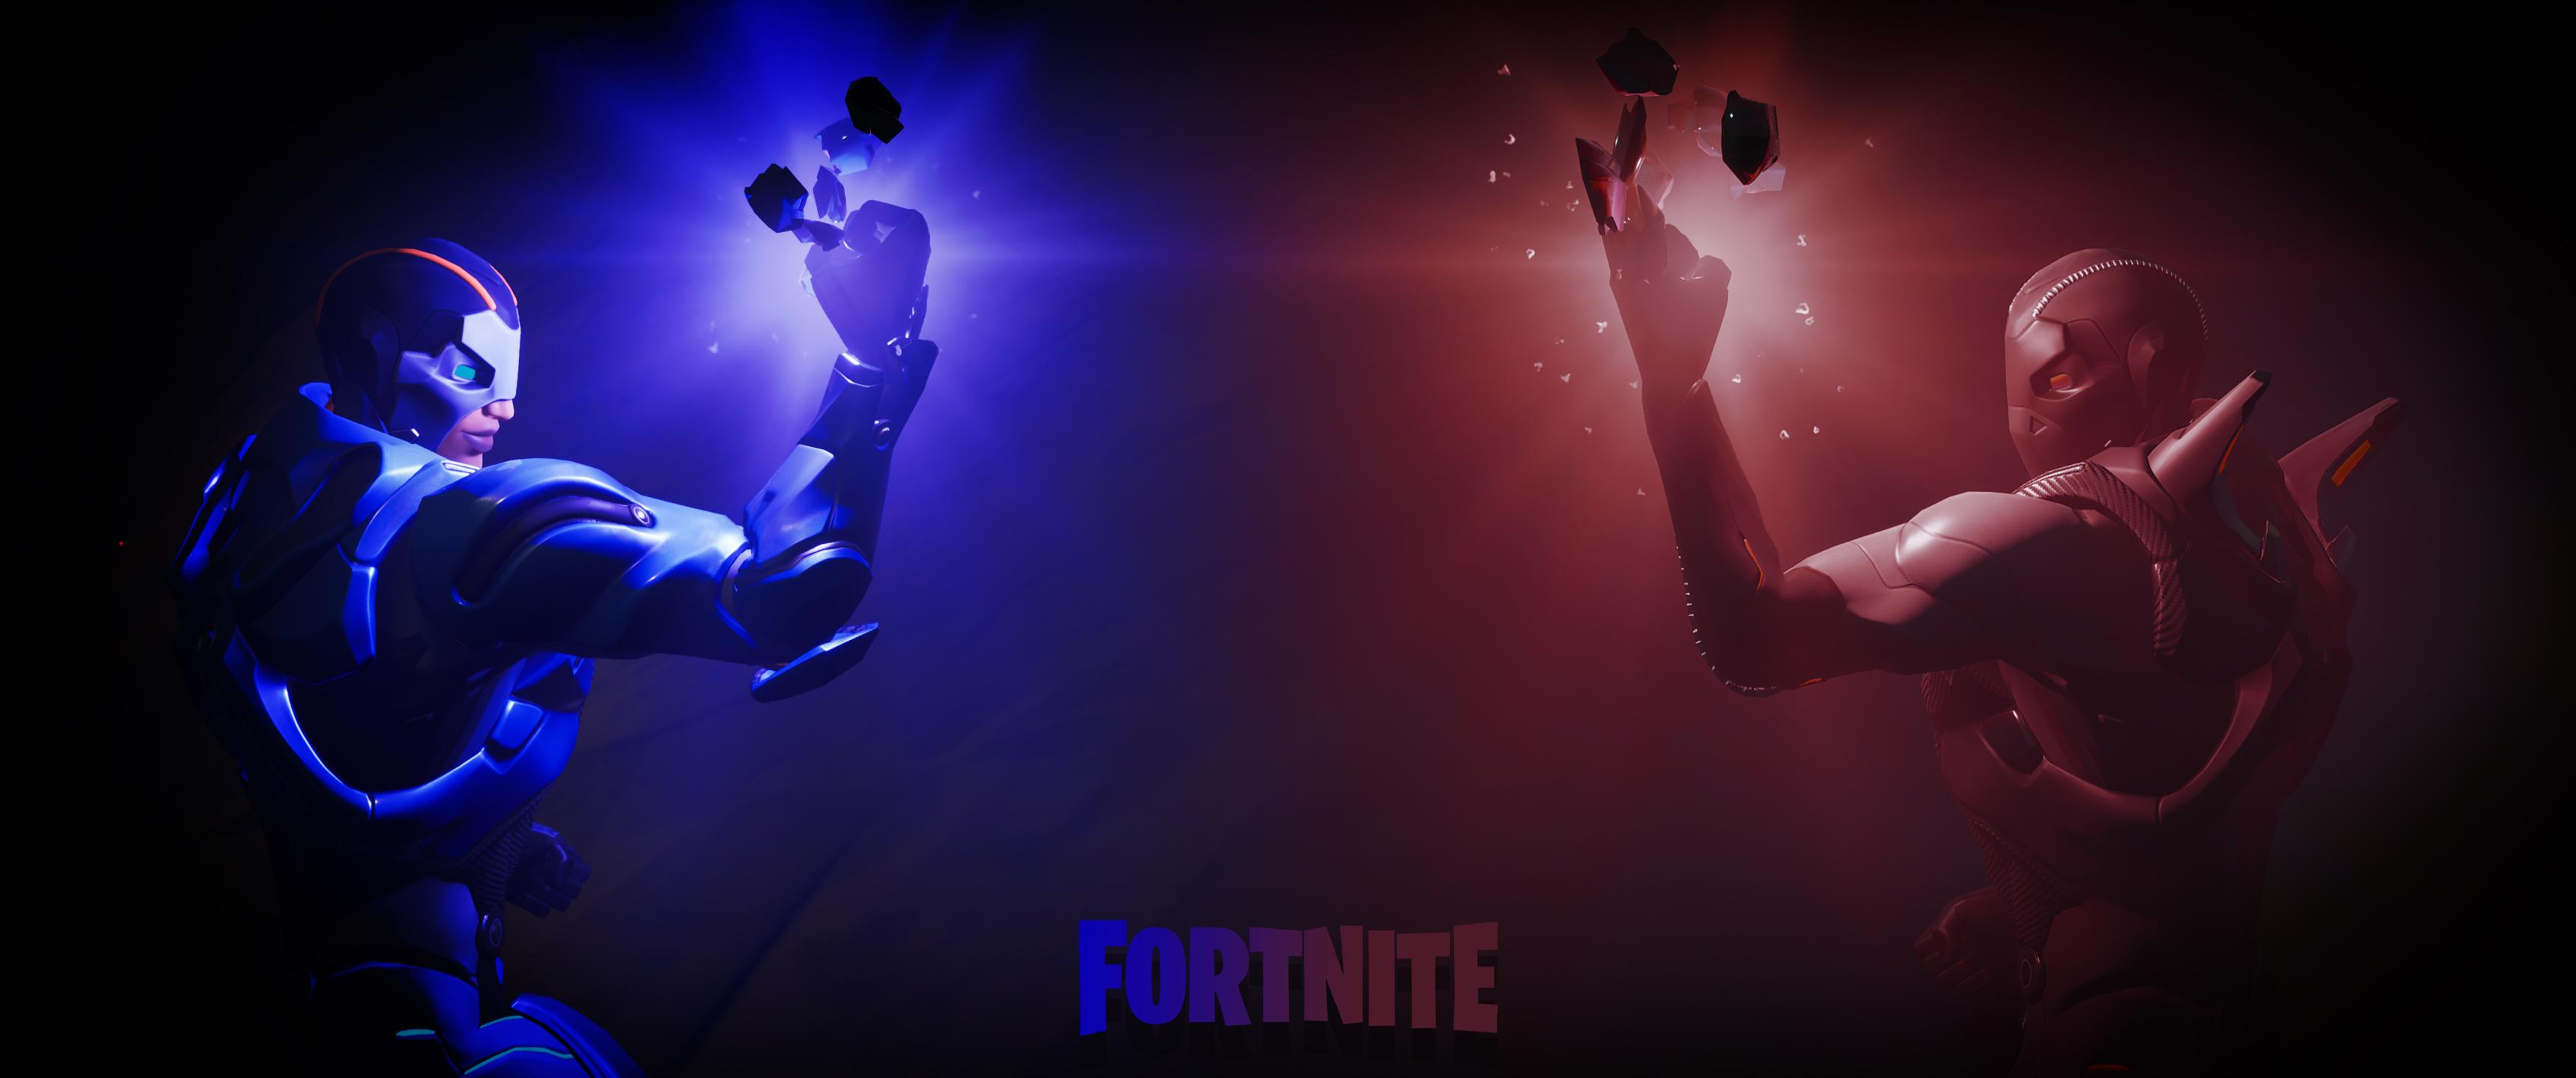 20 Fortnite Omega Wallpapers On Wallpapersafari